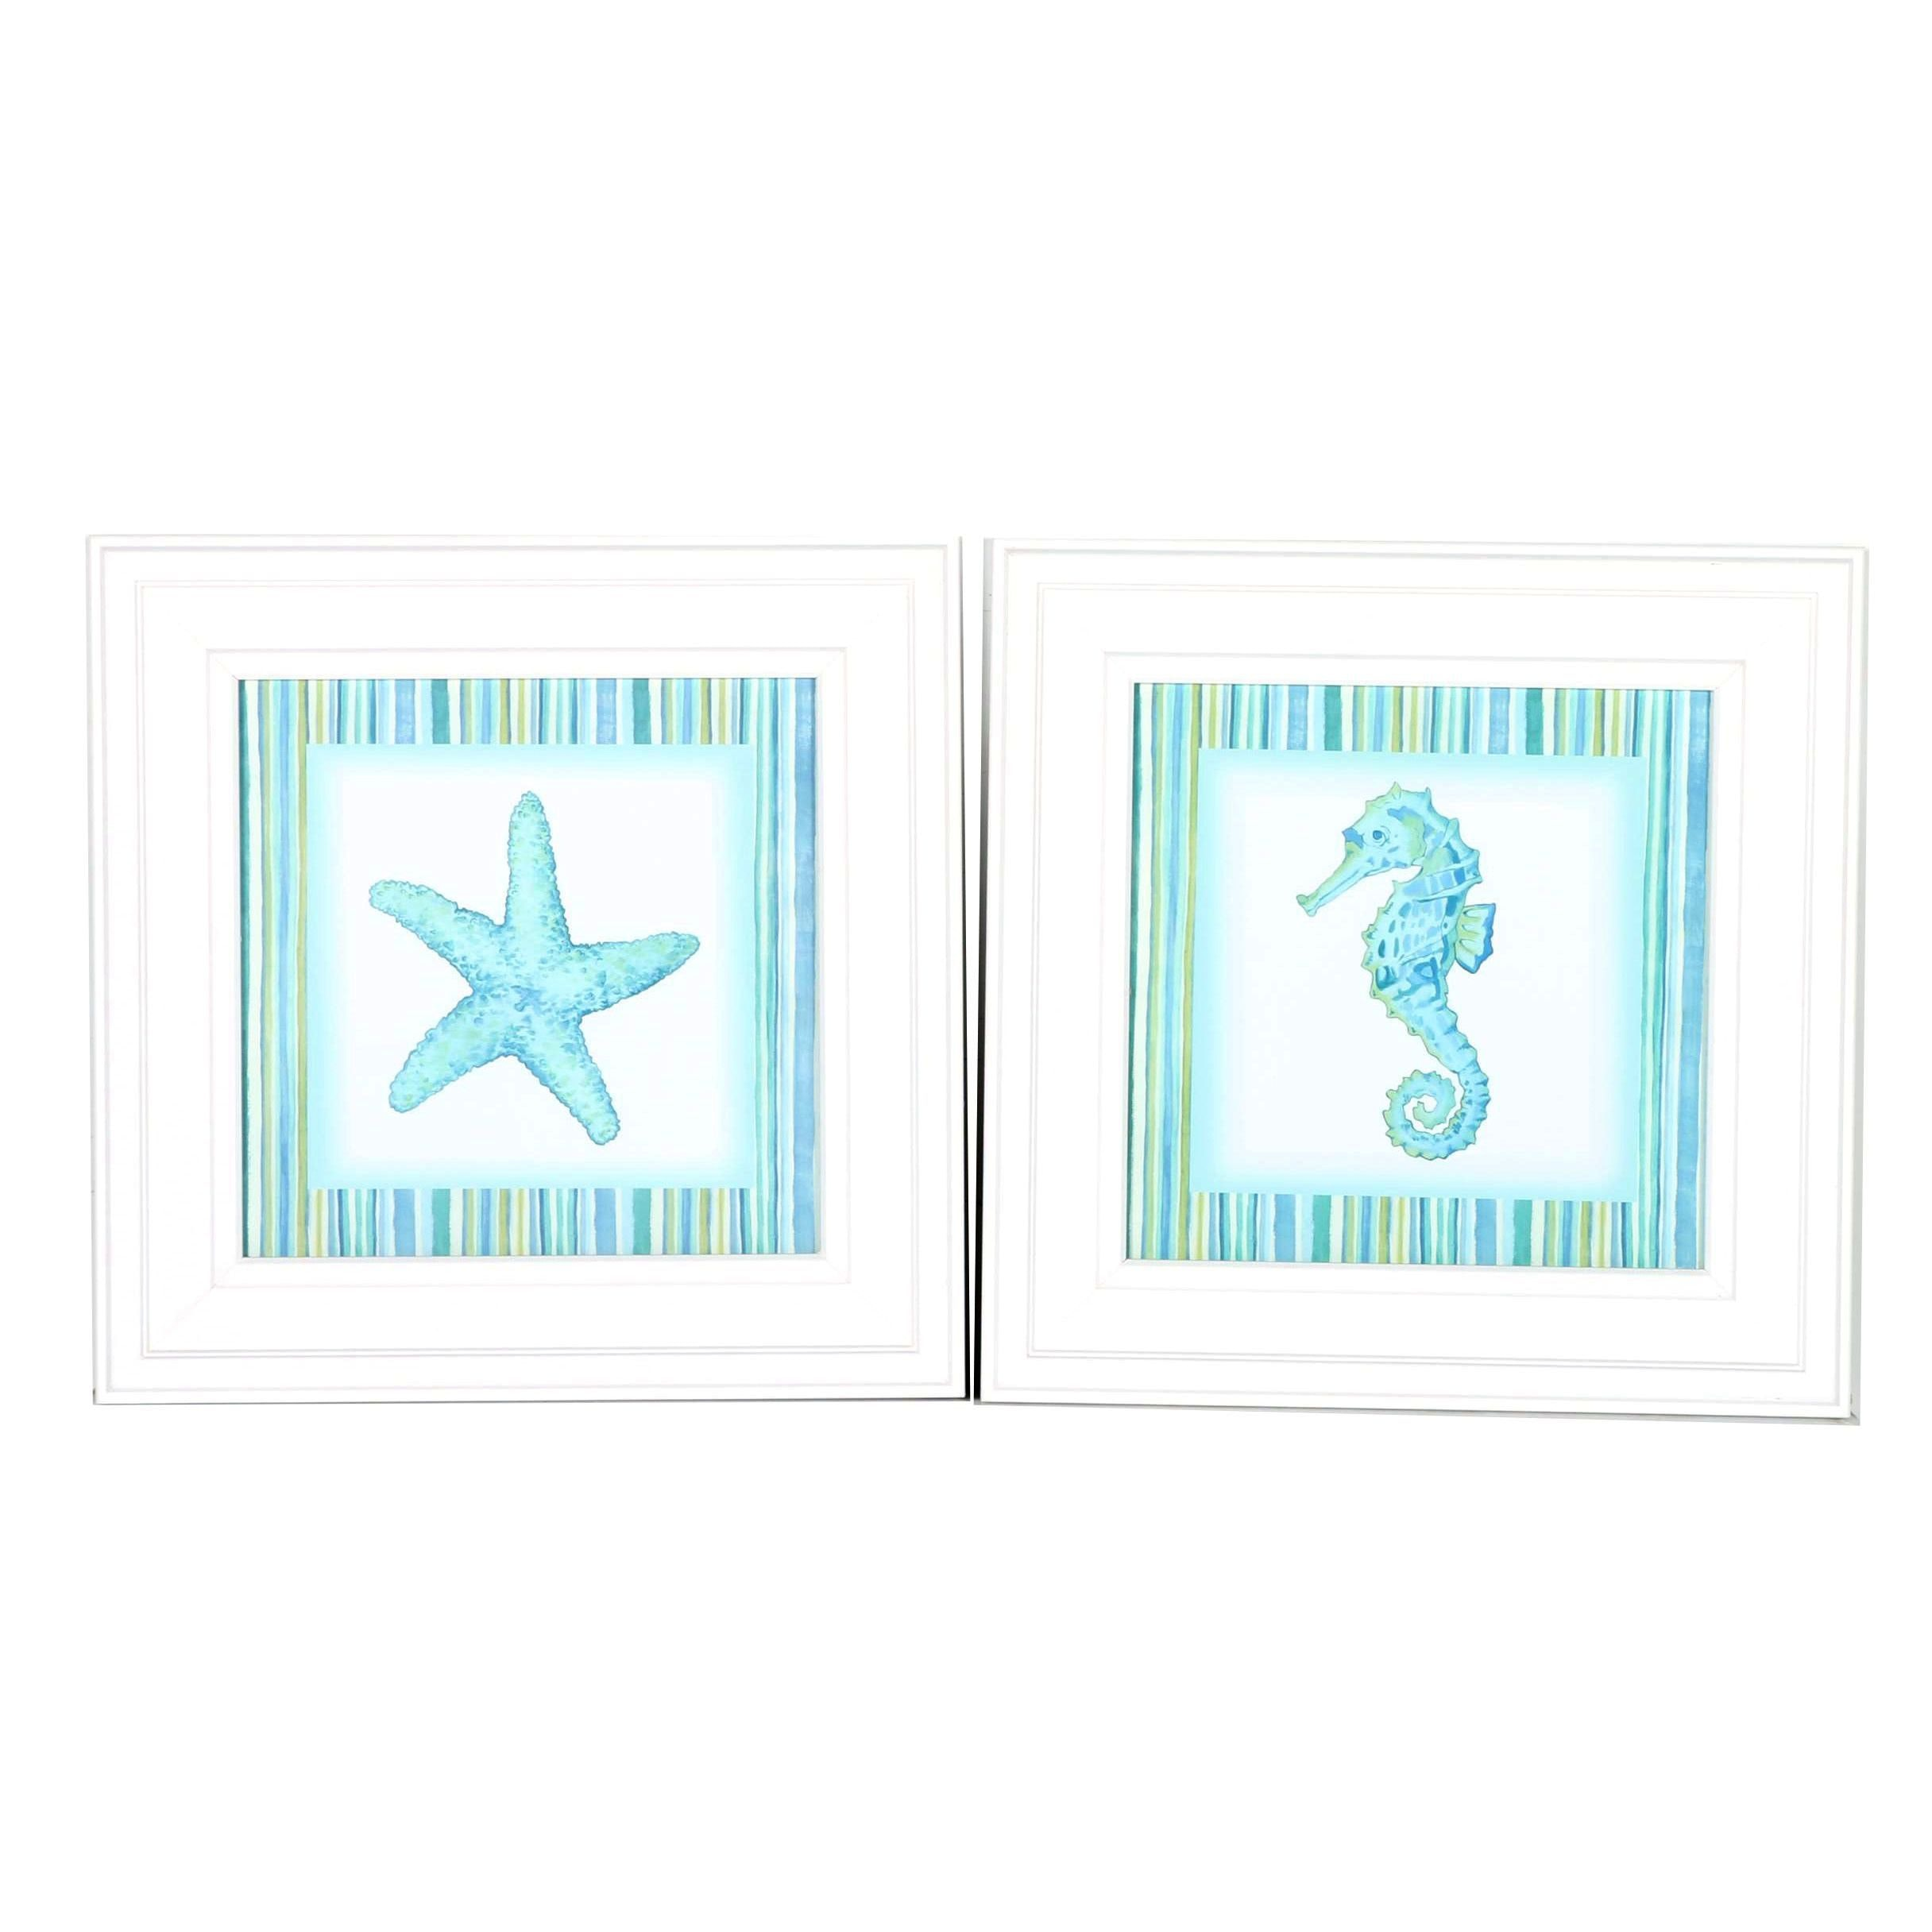 Framed Giclee Prints of Starfish and Seahorse